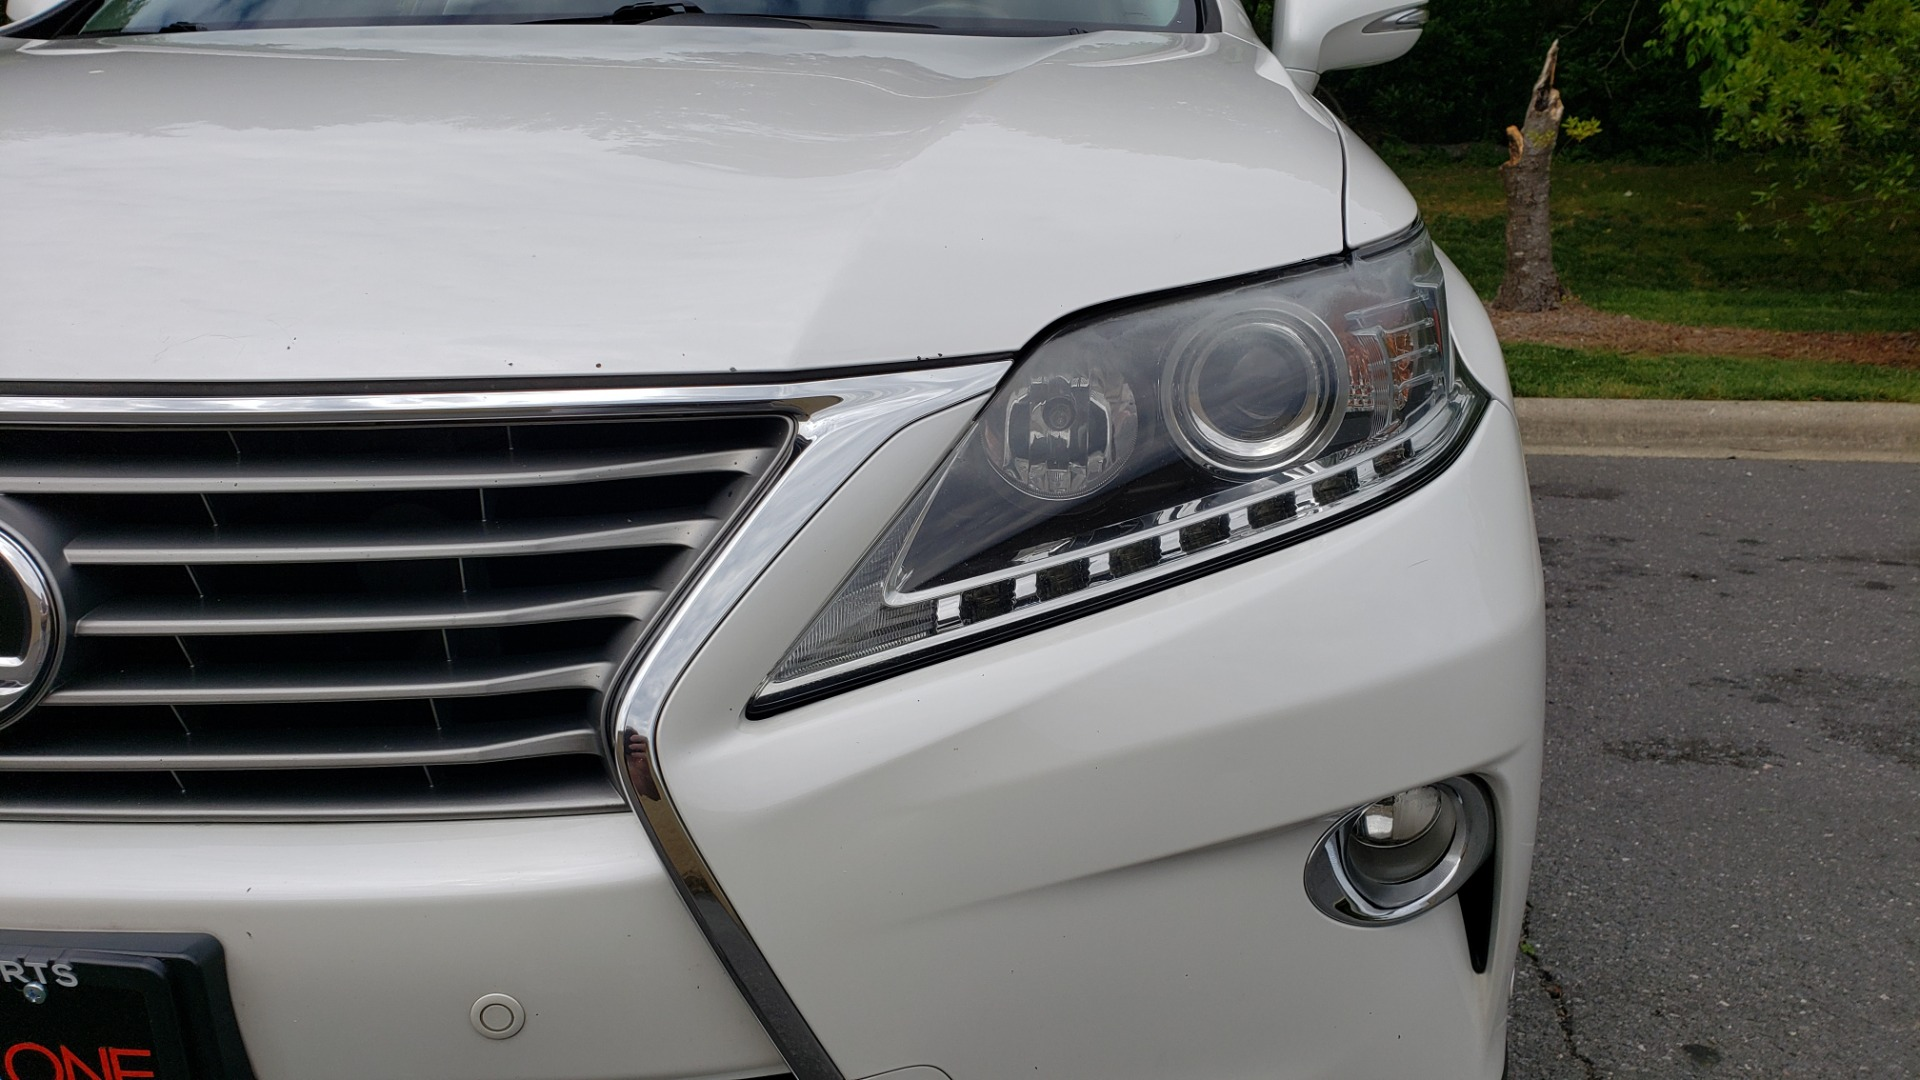 Used 2013 Lexus RX 350 PREMIUM PKG / SUNROOF / BSM / PARK ASST / REARVIEW for sale Sold at Formula Imports in Charlotte NC 28227 22